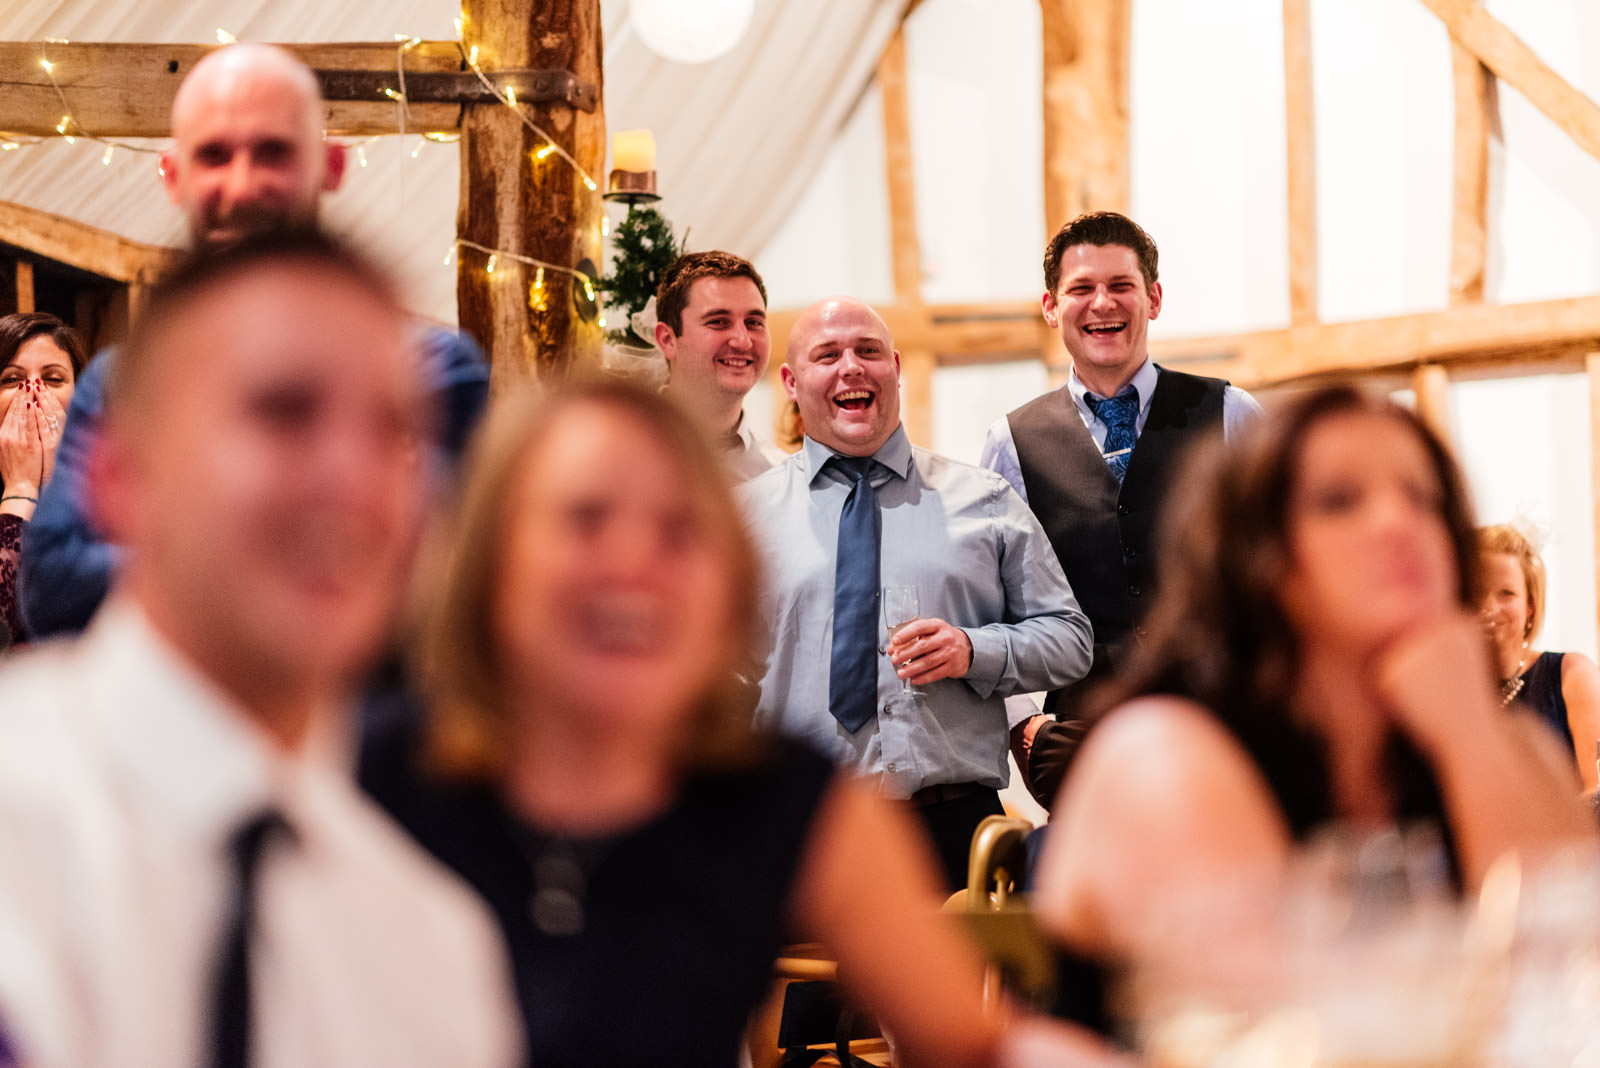 Guests laughing at best man speech